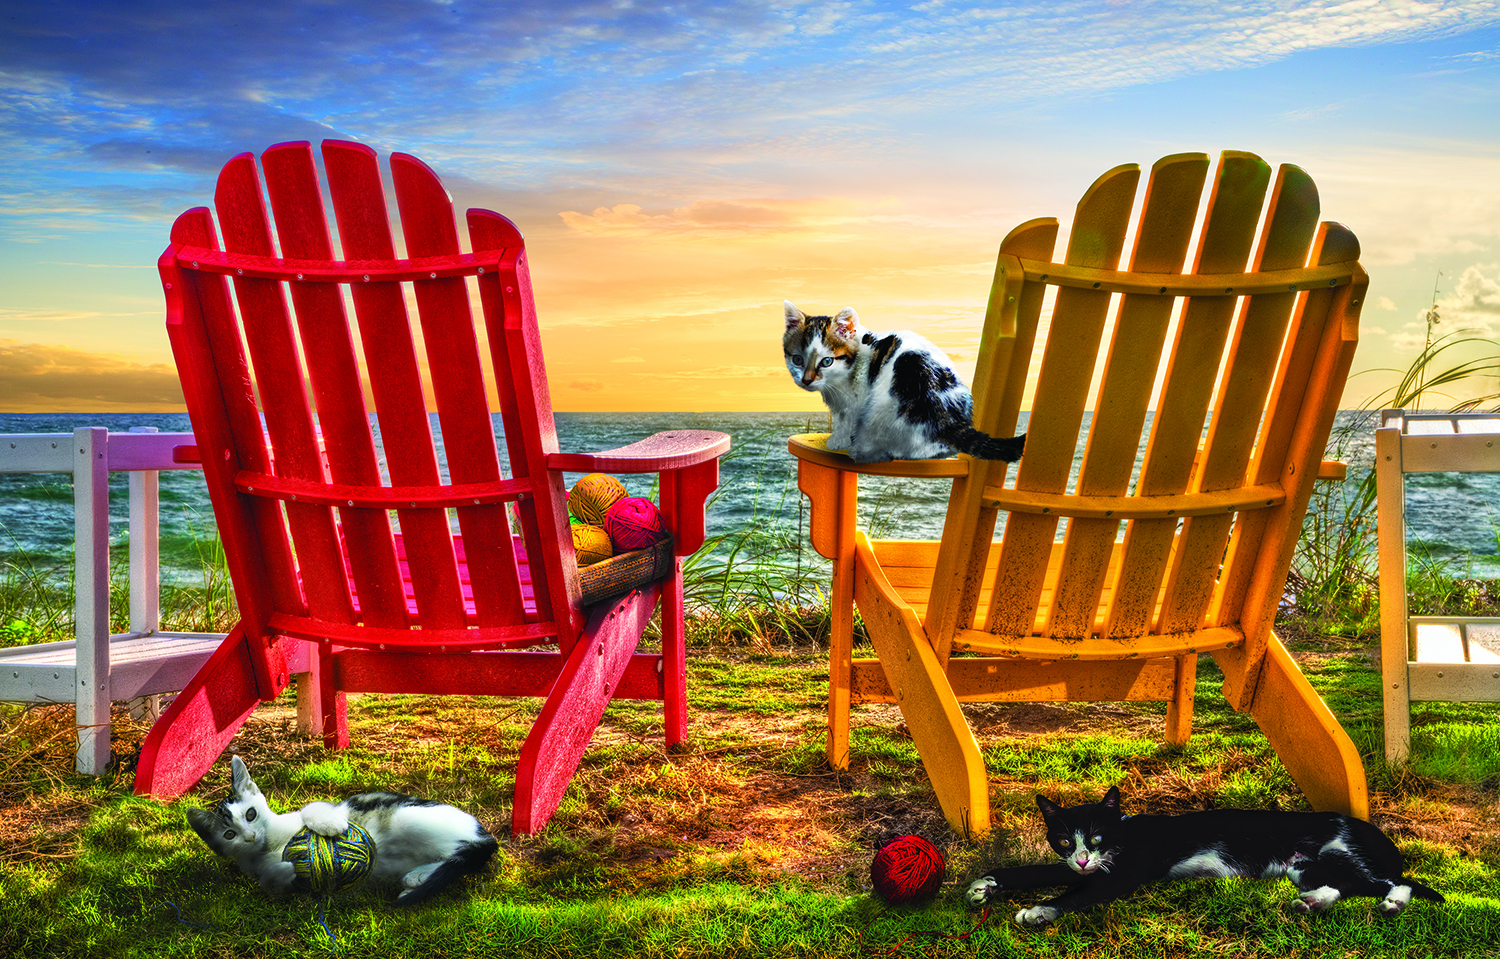 Cat Nap at the Beach 1000 Piece Jigsaw Puzzle by SunsOut